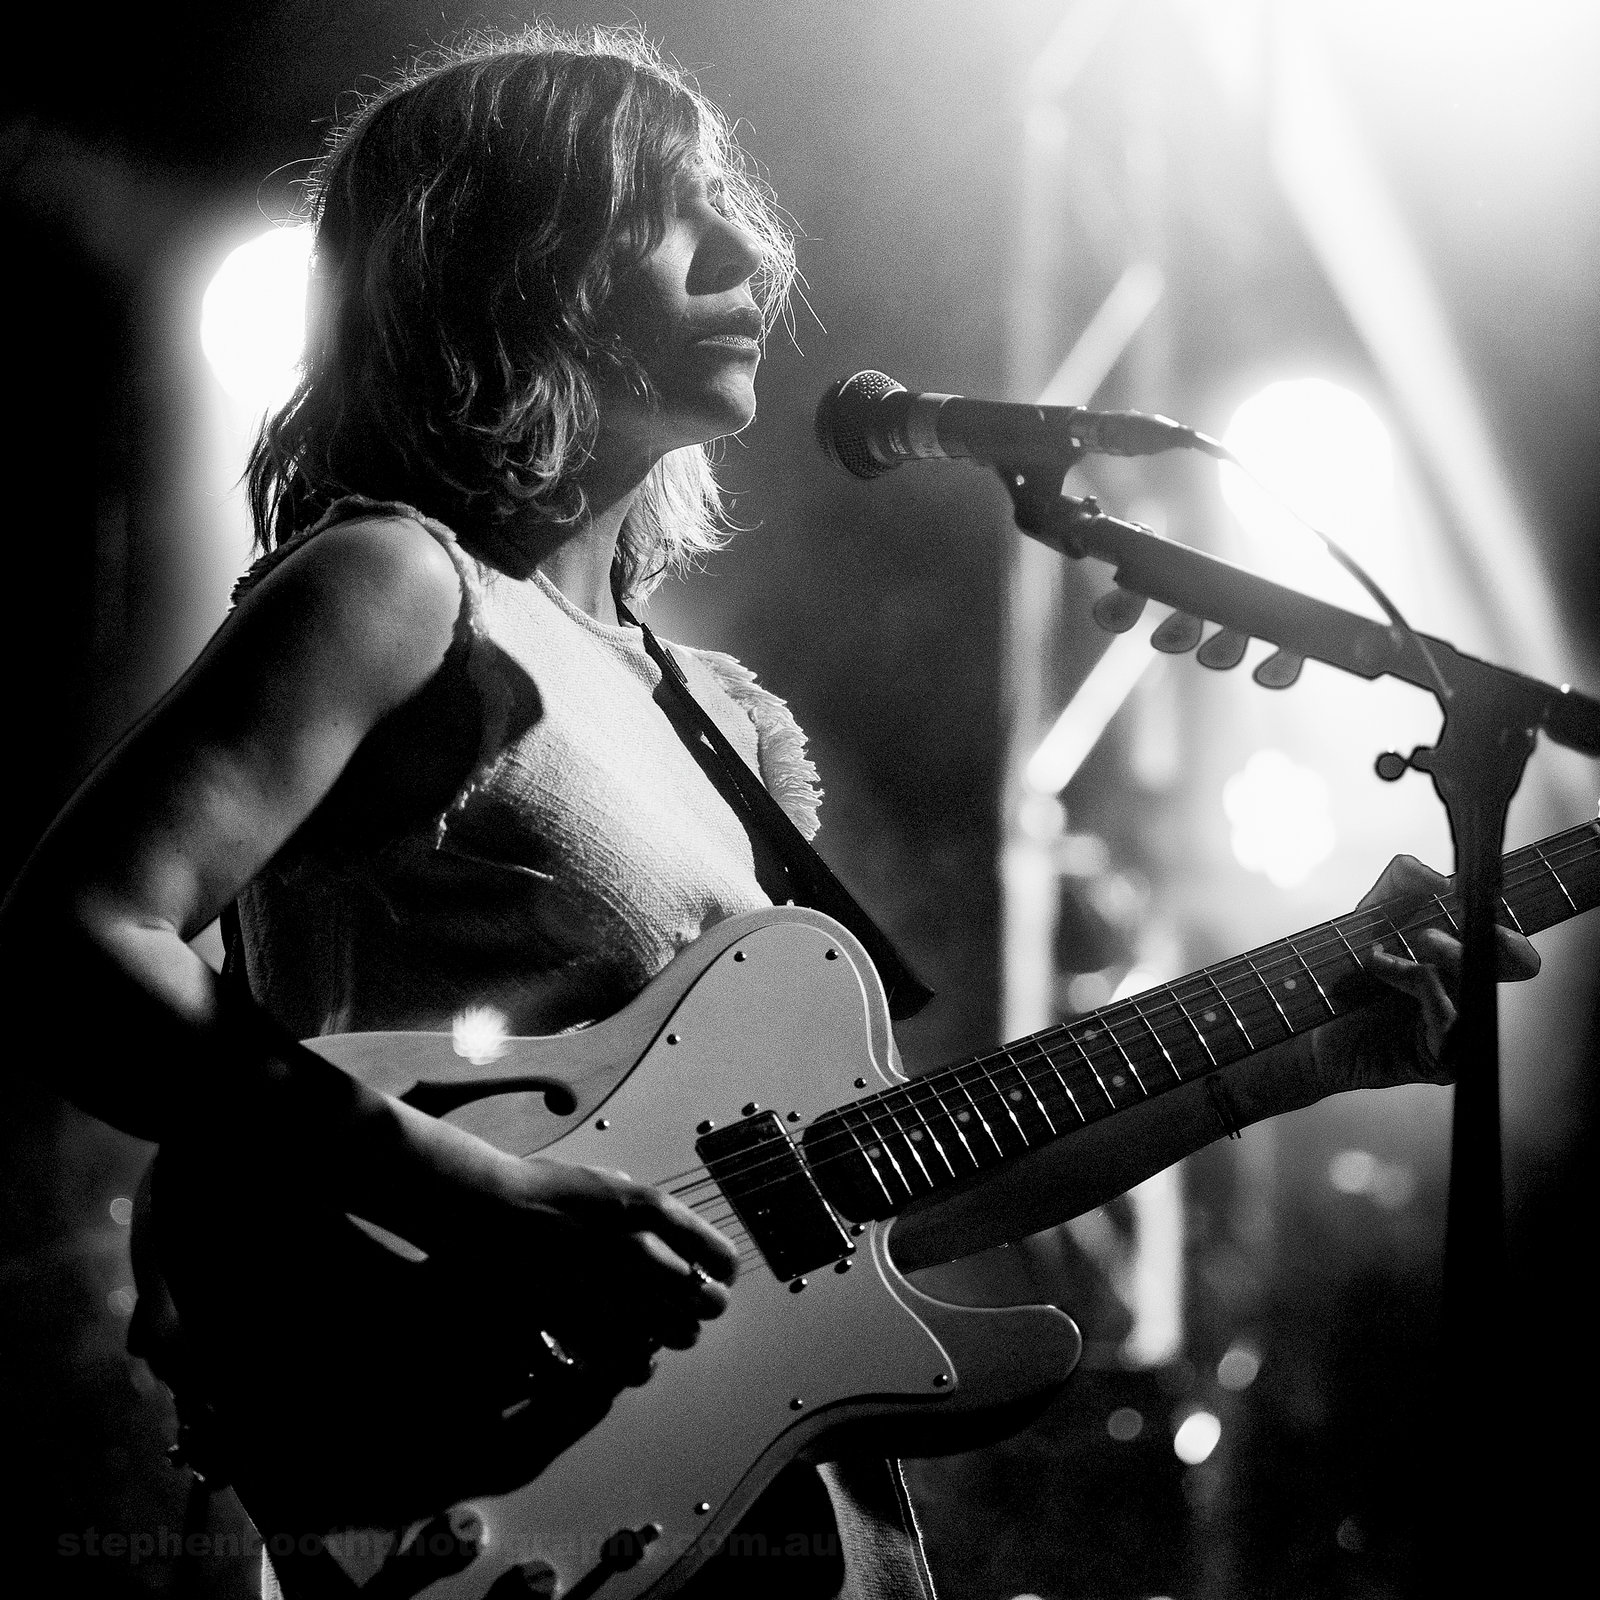 Carrie Brownstein / Sleater-Kinney 2016